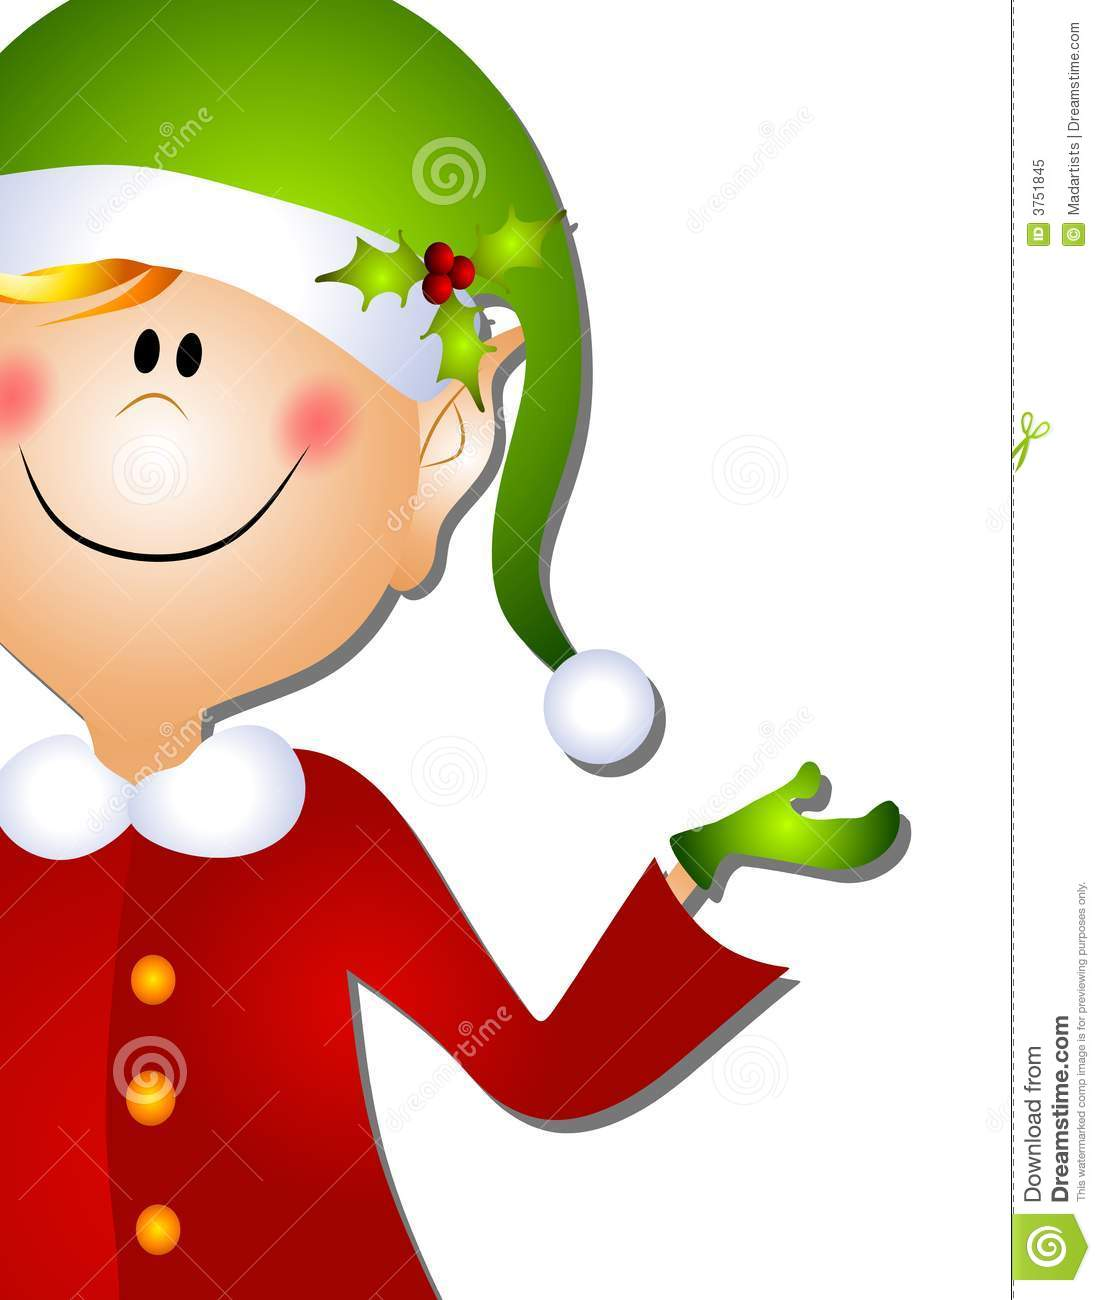 christmas santa elf clip art 3 stock illustration illustration of rh dreamstime com Silly Christmas Elves Clip Art free clipart christmas elf